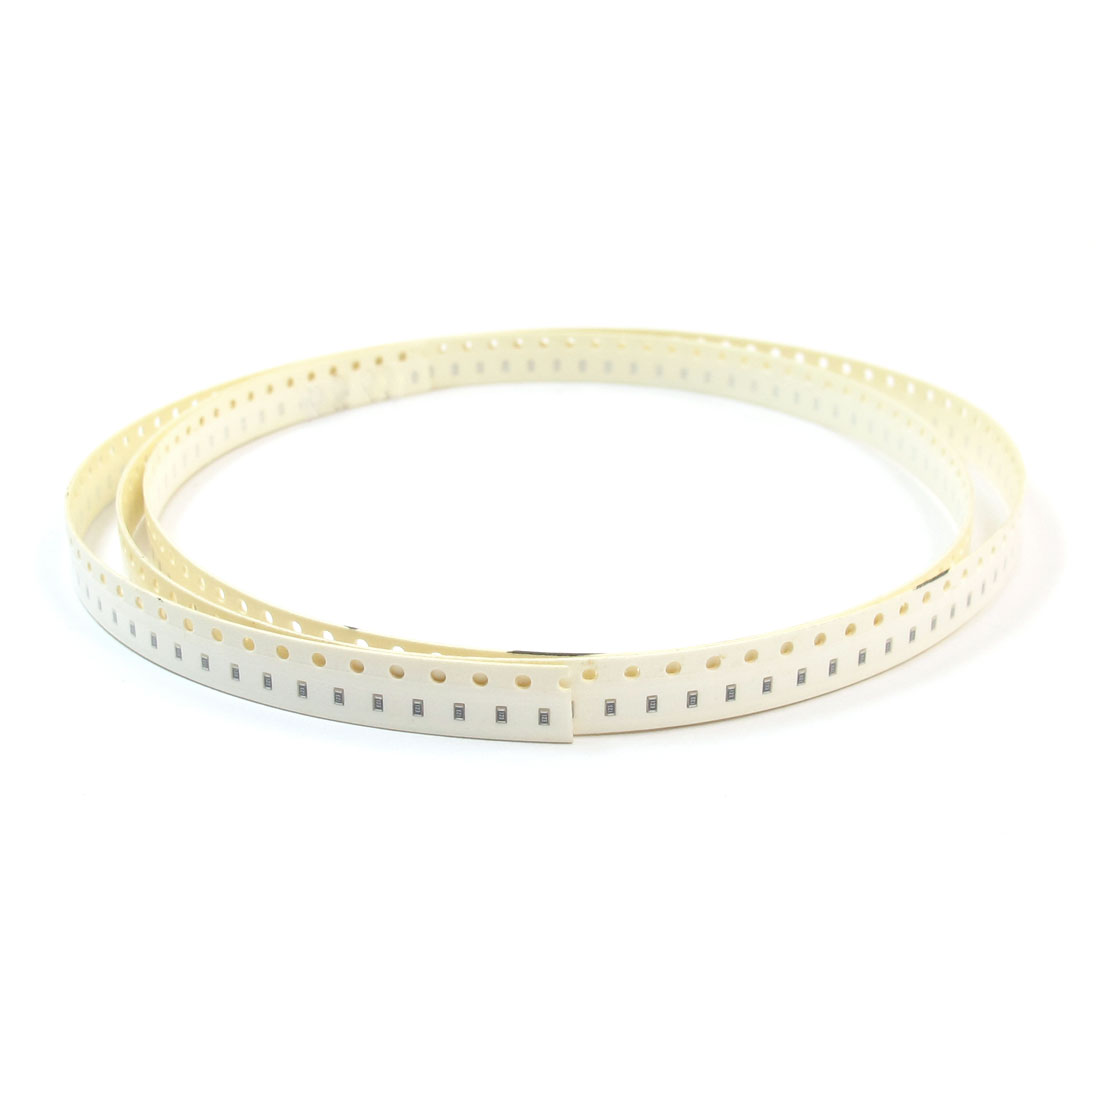 200 Pcs 0603 1608 7.5K Ohm Resistance 1/16W Watt 5% Tolerance Surface Mounted Film SMT SMD Chip Fixed Resistors Strip